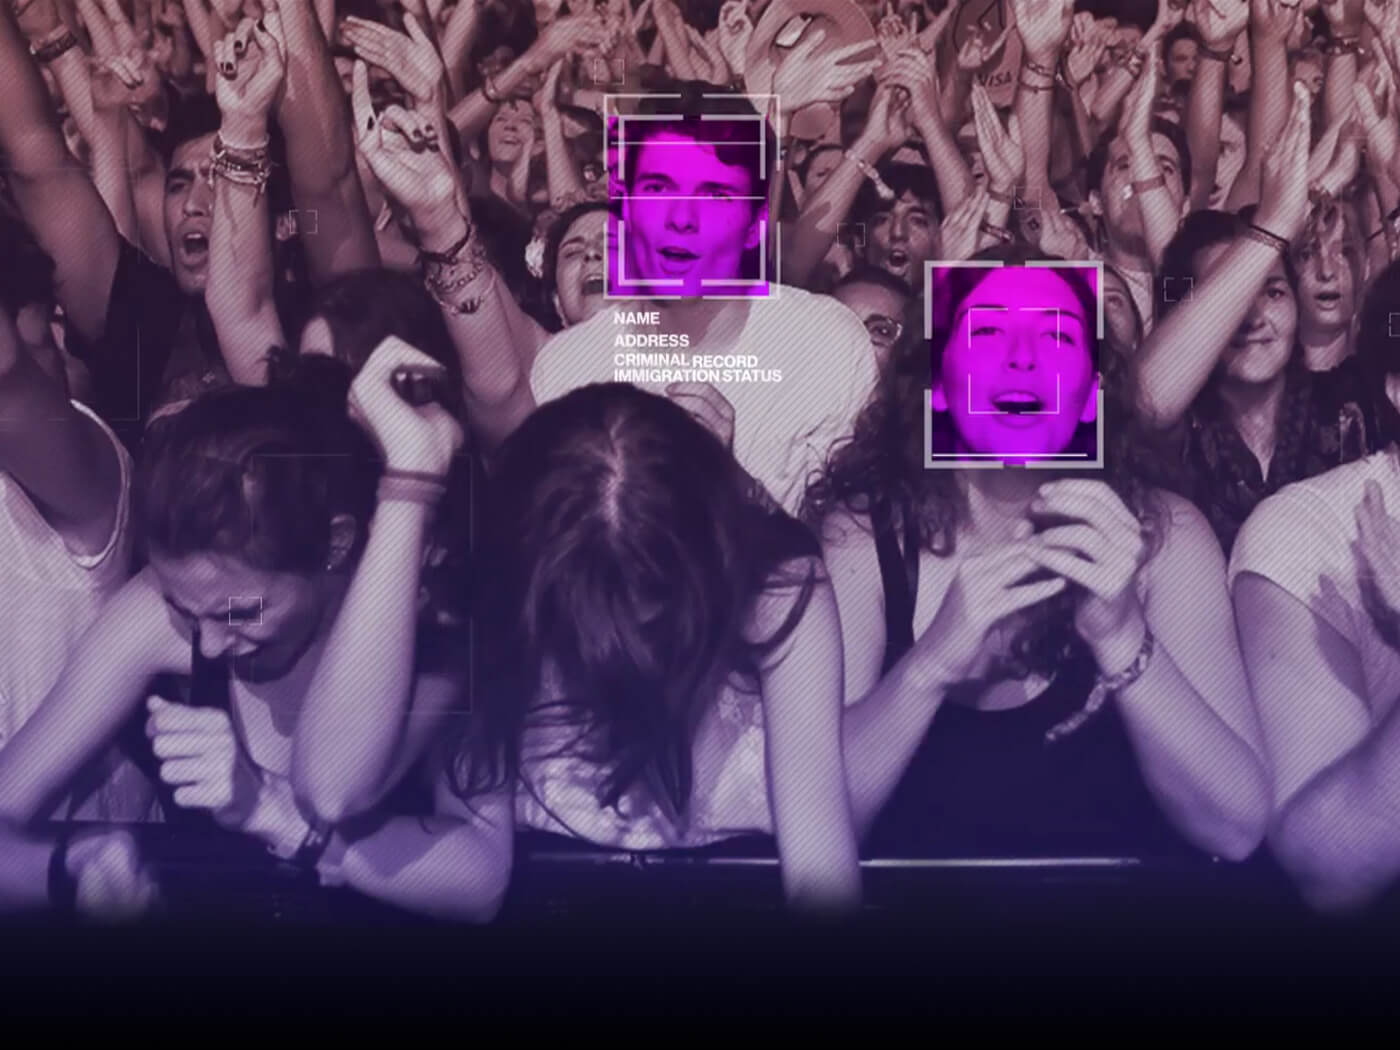 Facial recognition at gigs strongly opposed by musicians